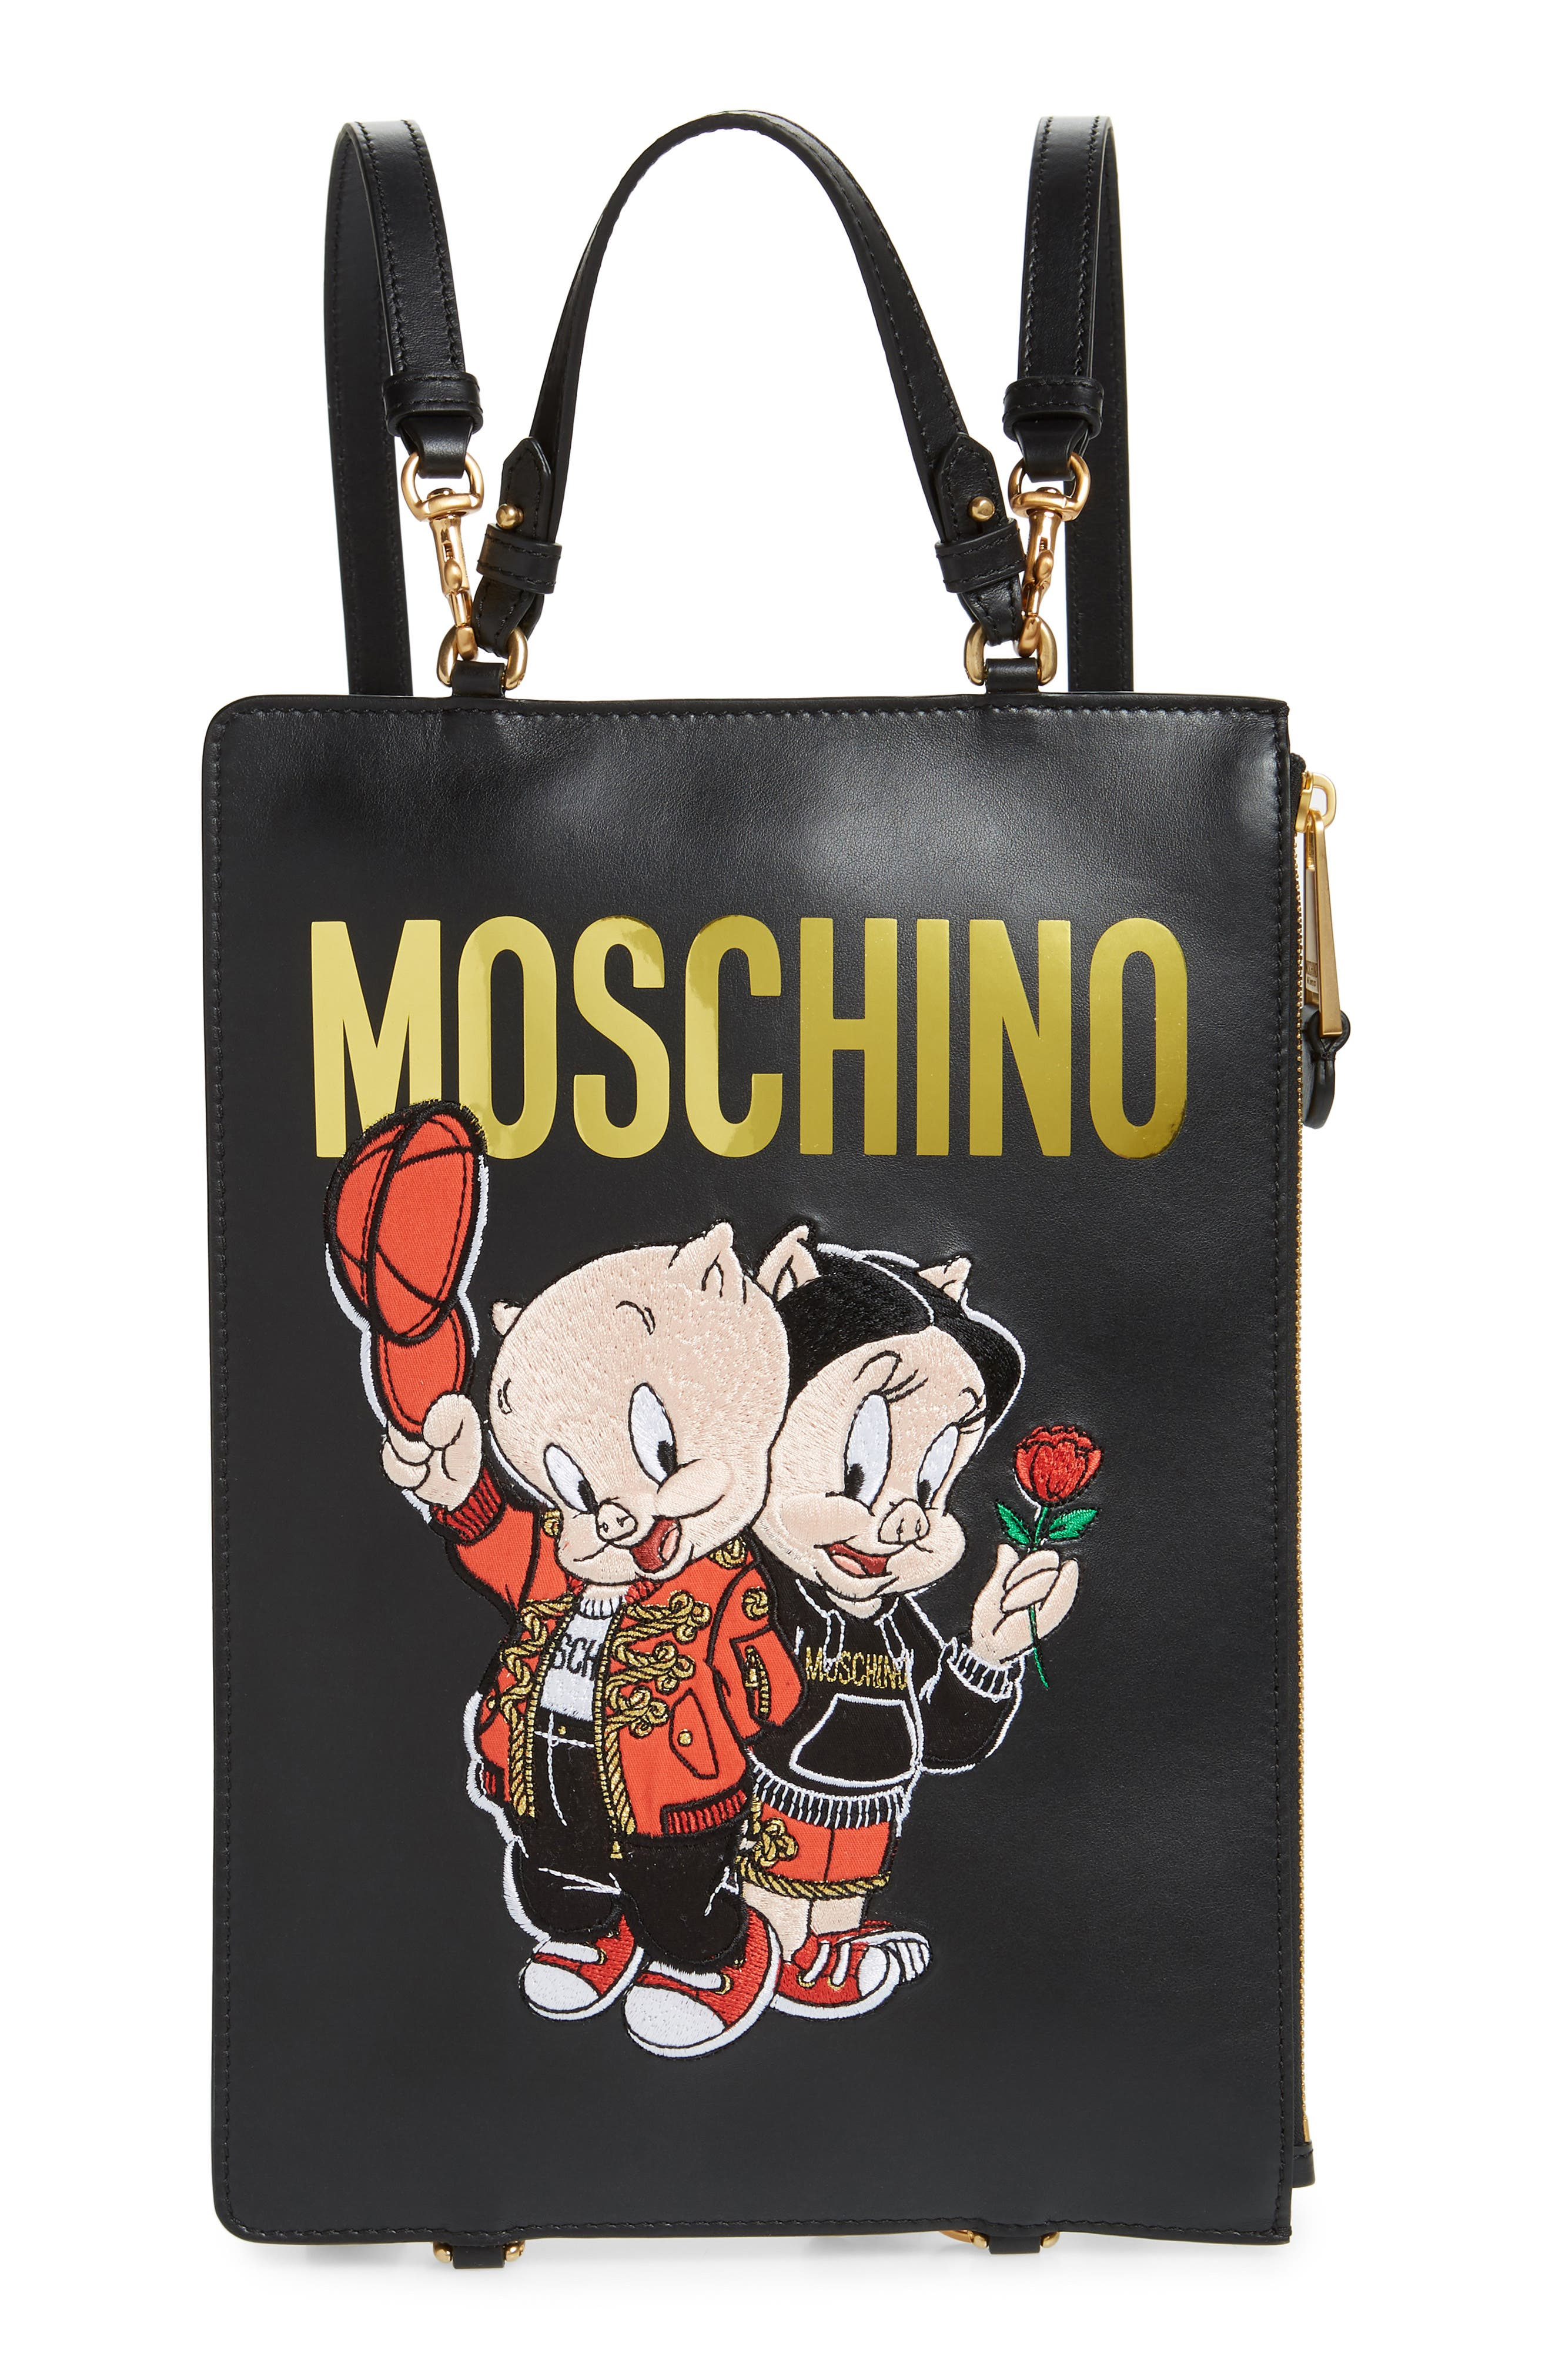 MOSCHINO Porky Pig Convertible Backpack, Main, color, BLACK